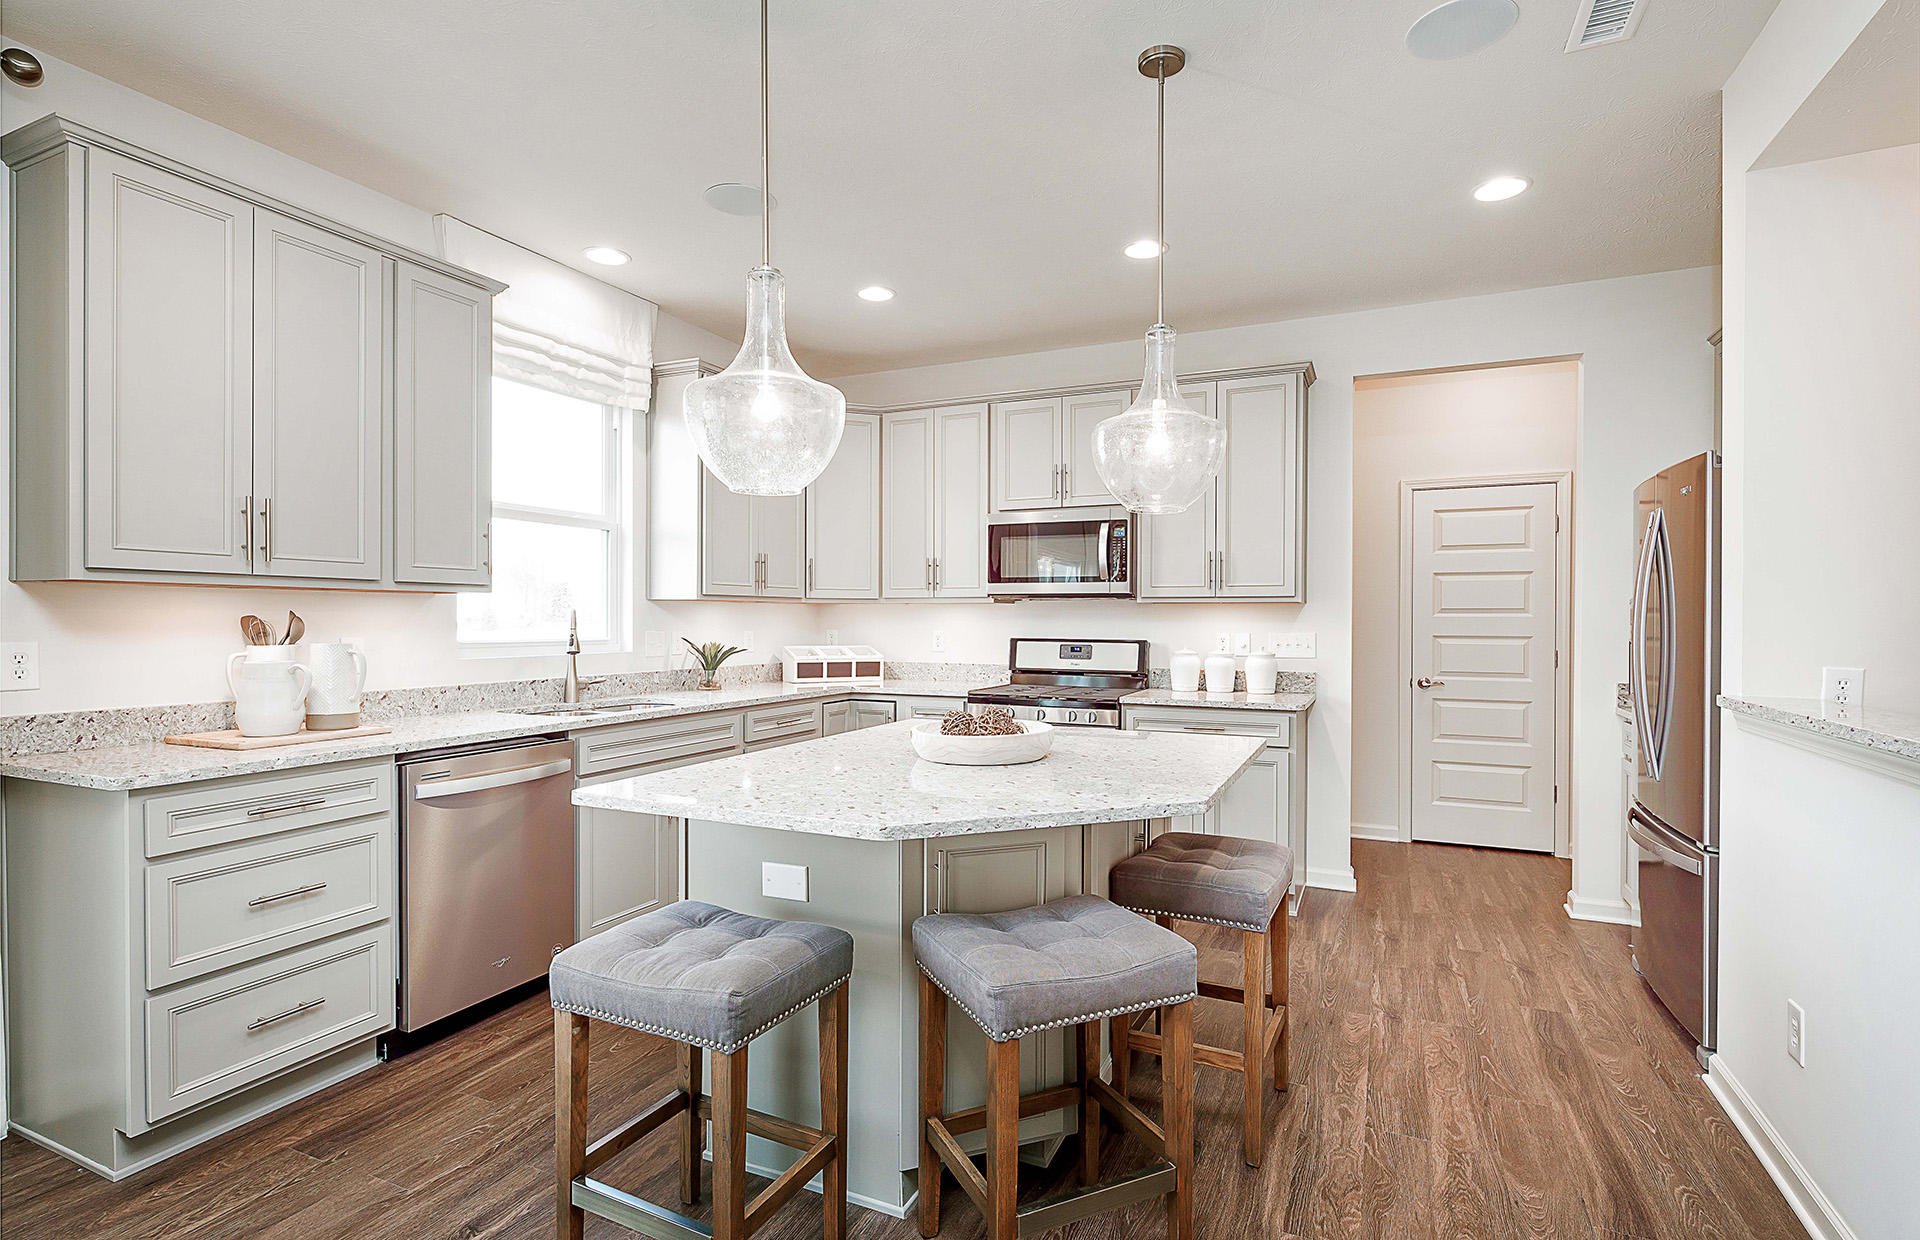 Wood Hollow by Pulte Homes image 6